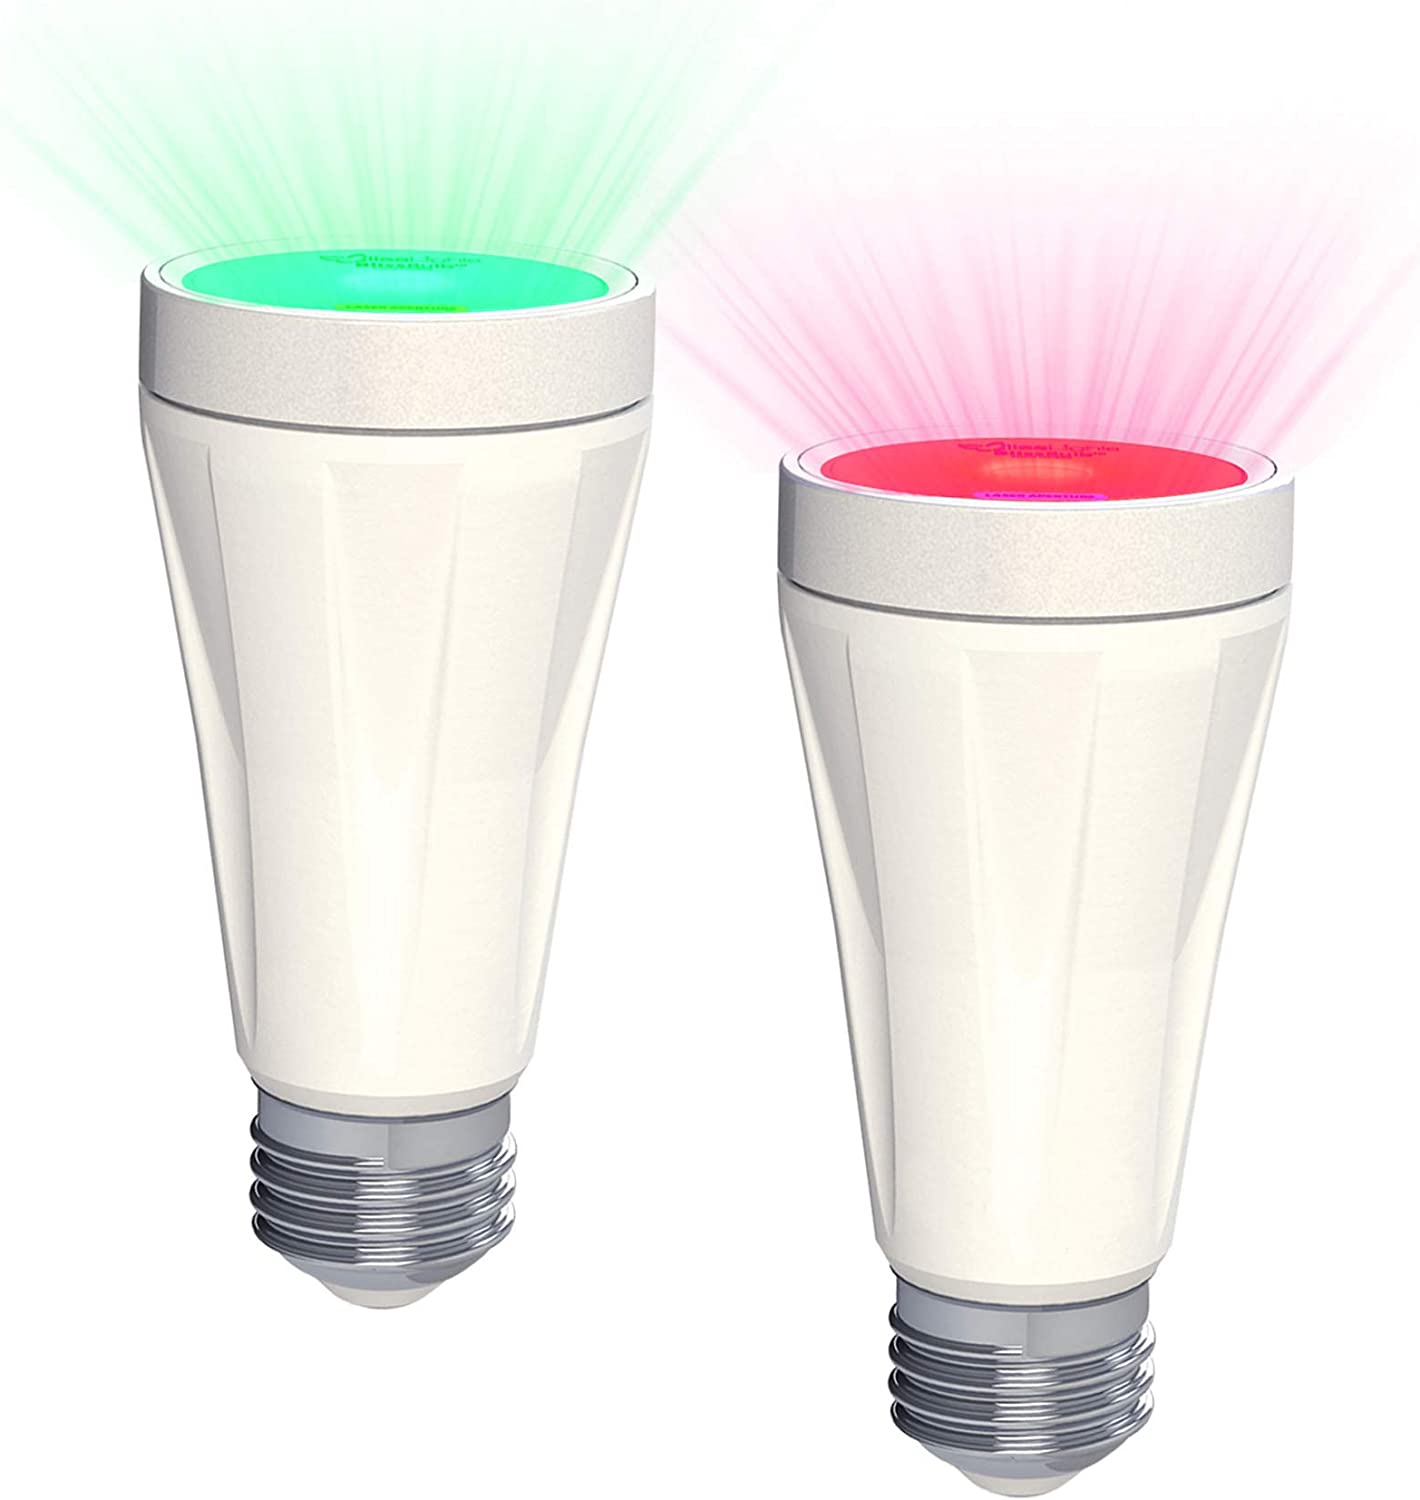 BlissLights BlissBulb - Laser Star Projector, Galaxy Lighting for Party, Holidays, Night Lights, Patios (Indoor/Outdoor, Standard E26 Base) - Red & Green